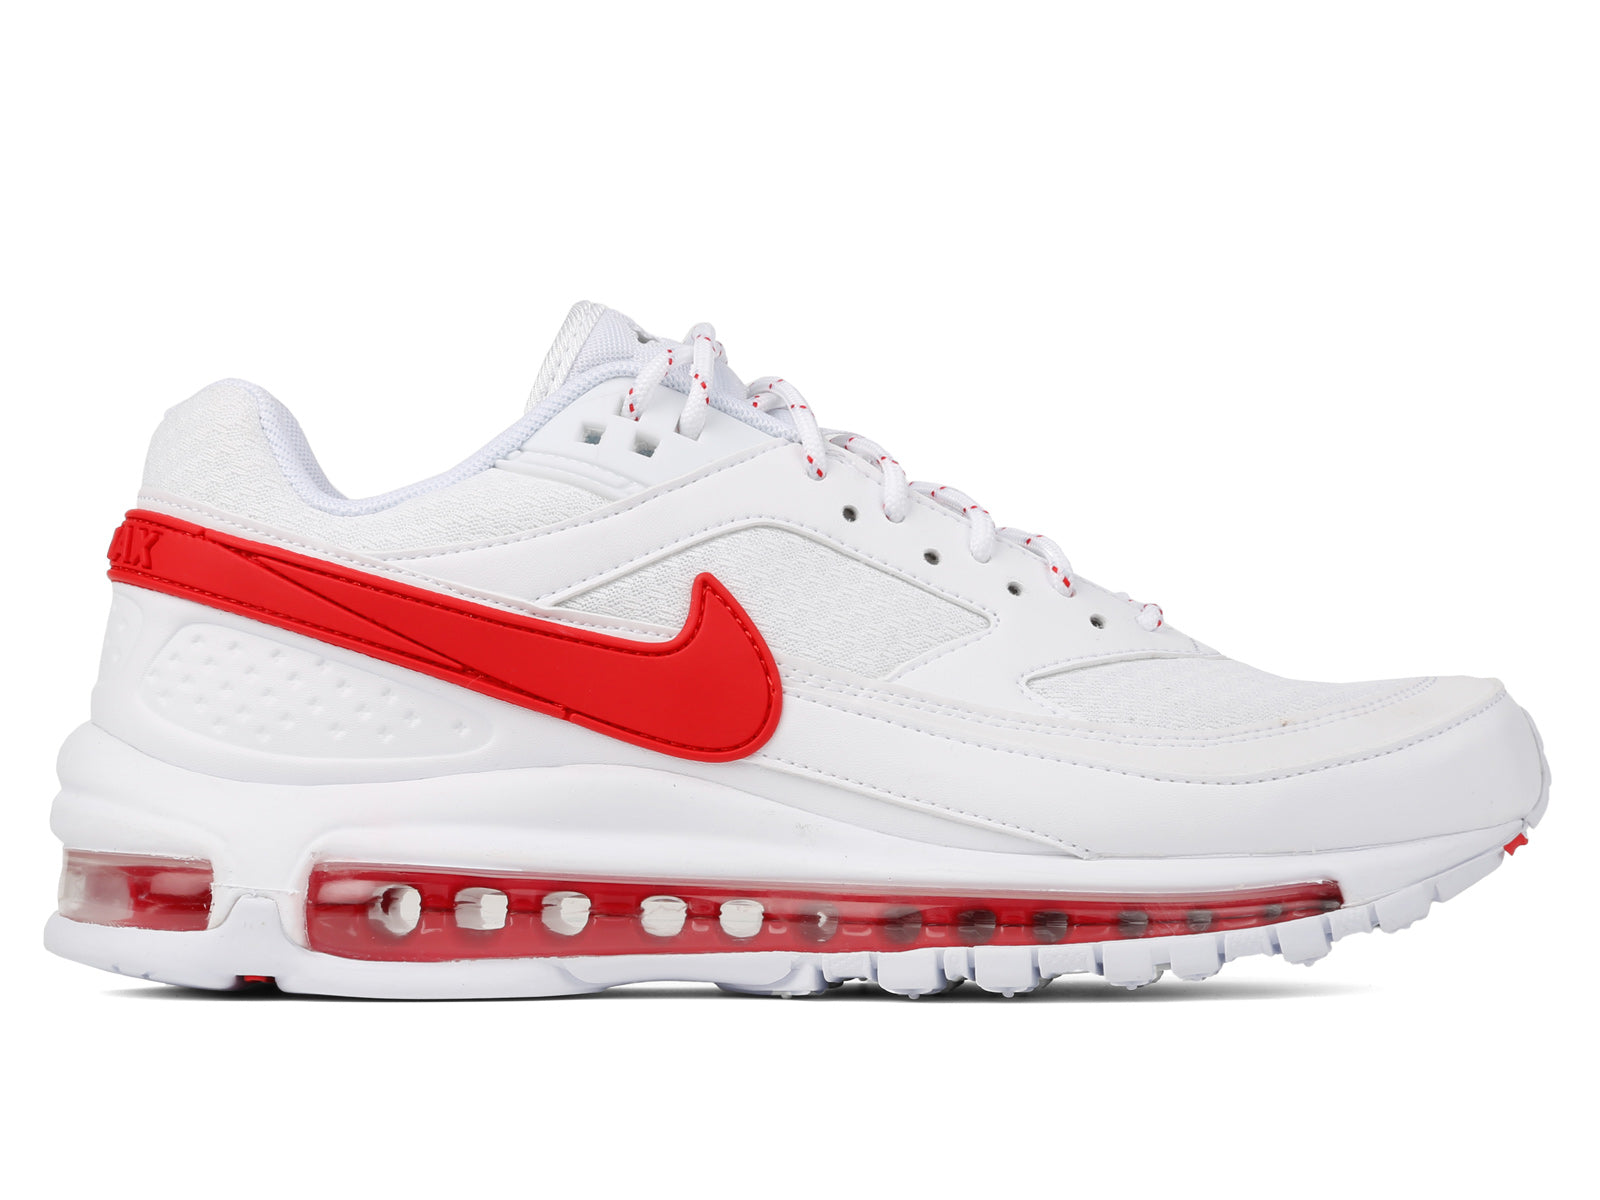 6d68852520 There the Air Max BW found favor among a variety of subcultures. In France,  particularly Paris, it was adopted by both the hip-hop community and among  ...